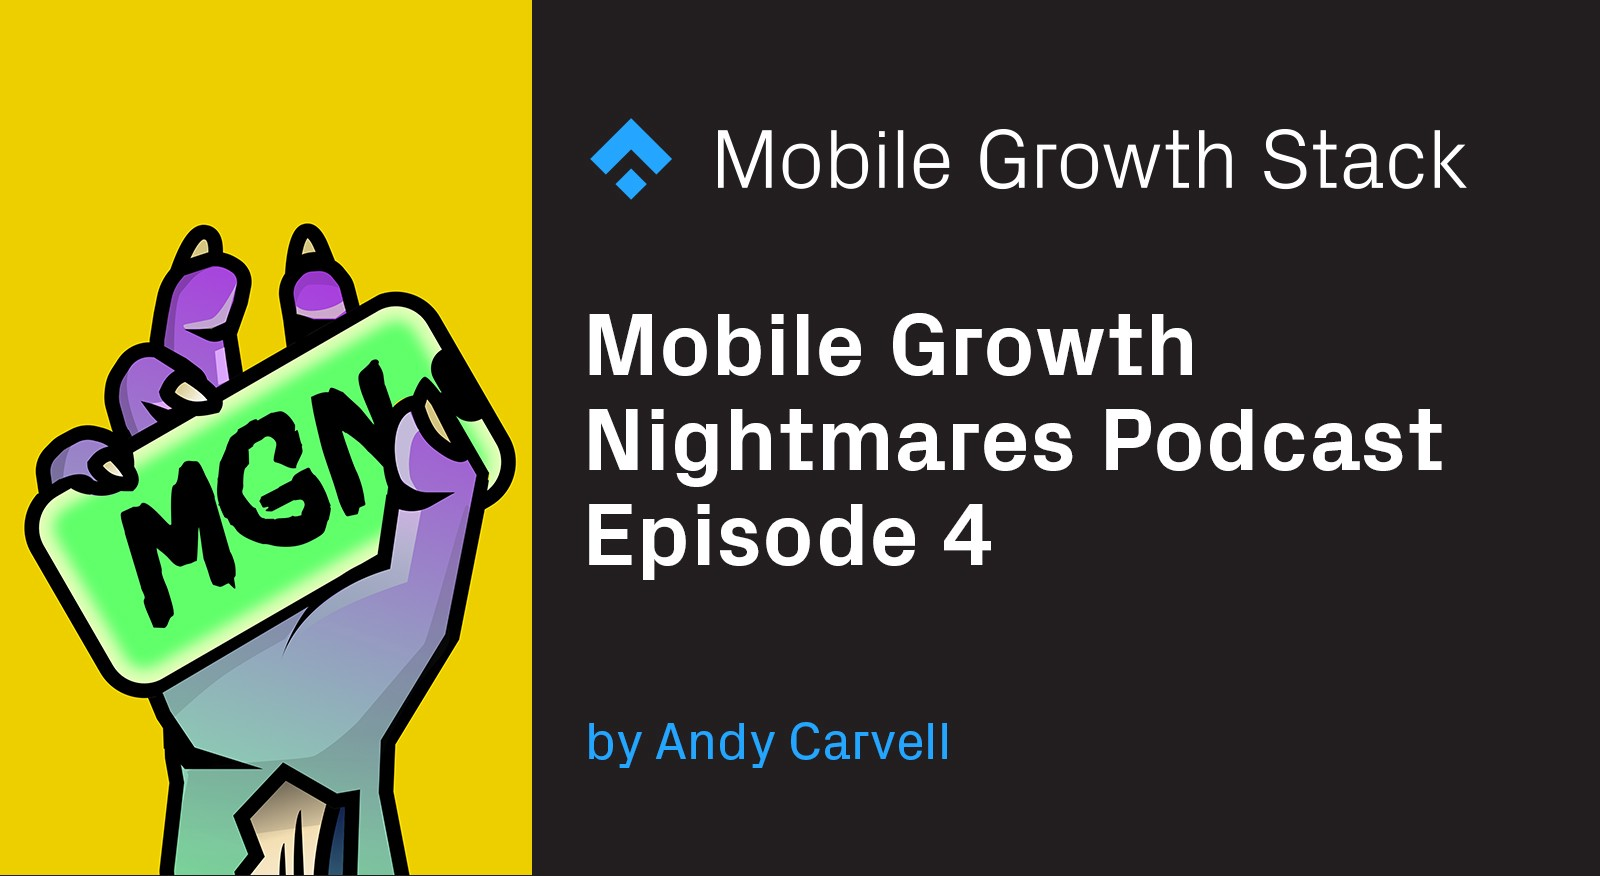 Mobile Growth Nightmares Episode 4 — Steve P. Young from App Masters